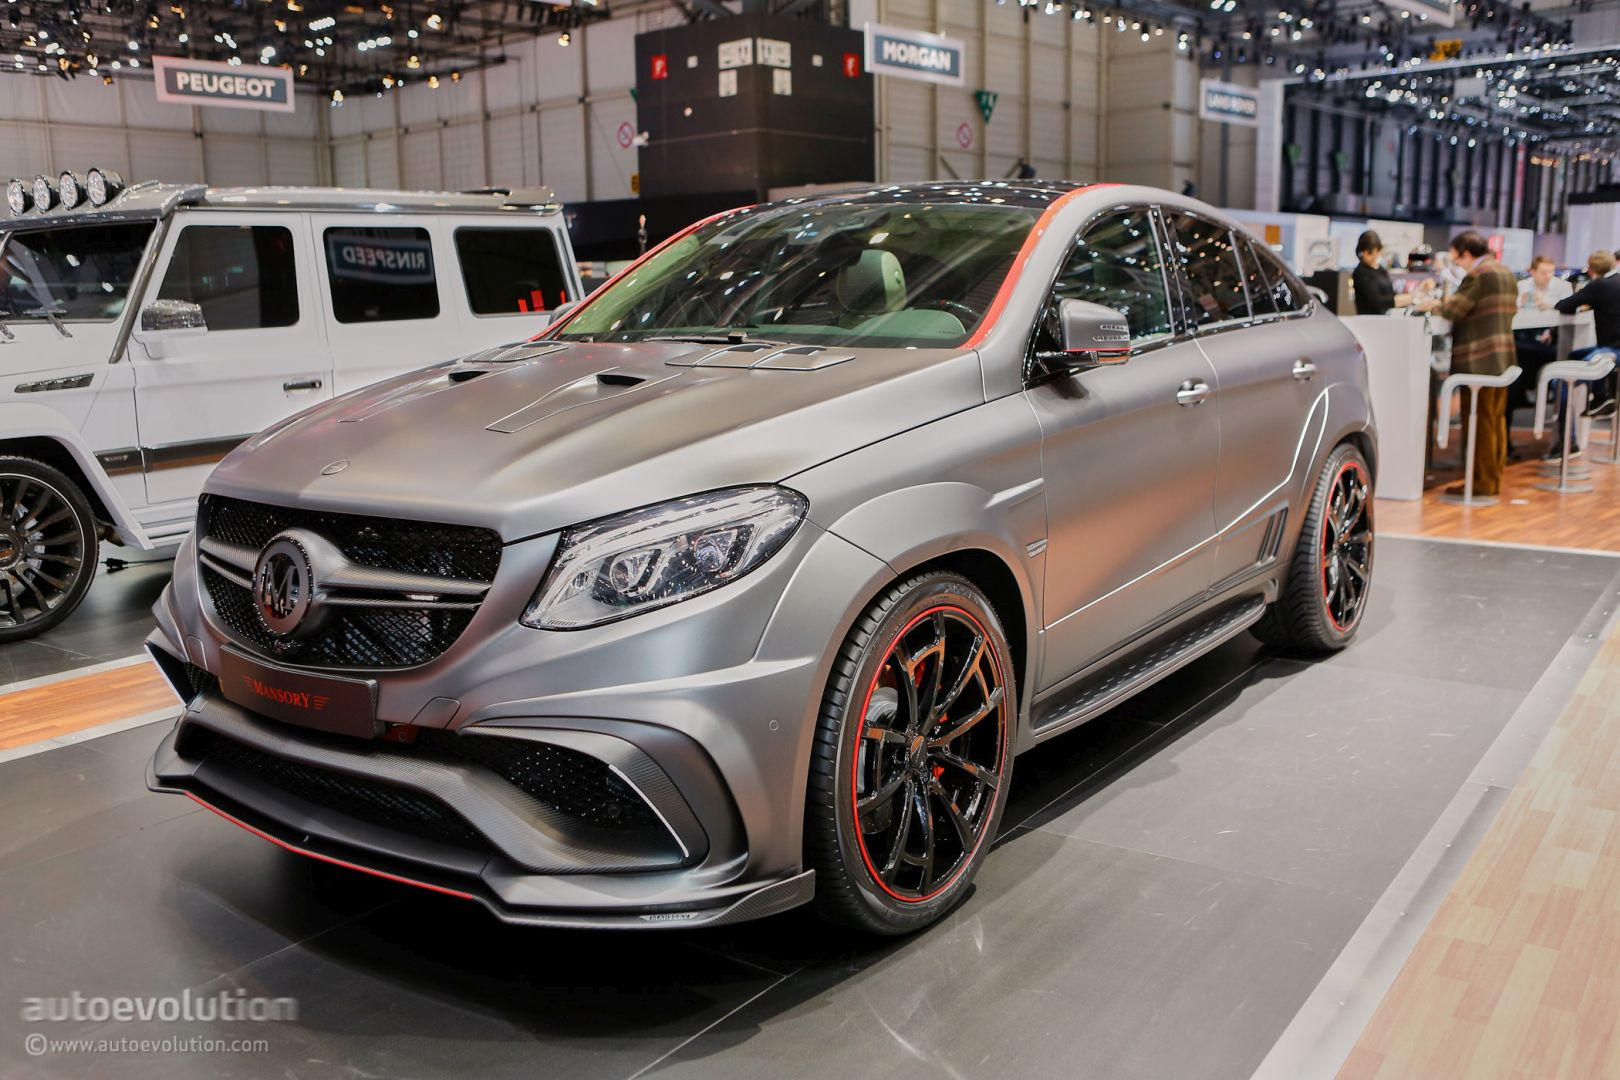 Mansorys Mercedes AMG Geneva Booth Sees GLE63 Coupe